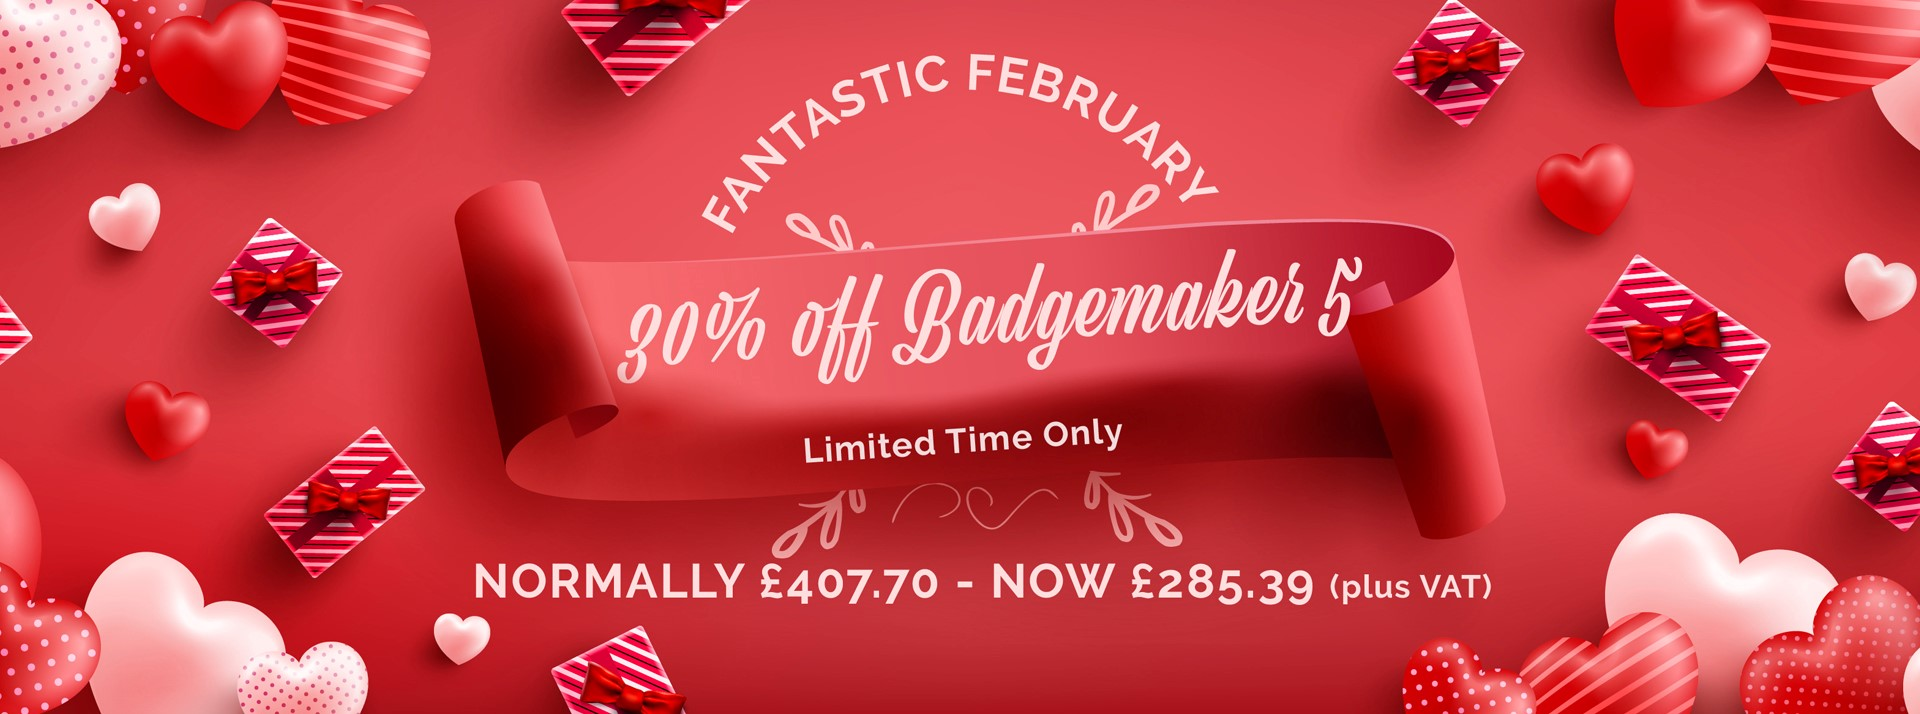 Badgemaker 5 - 30% off